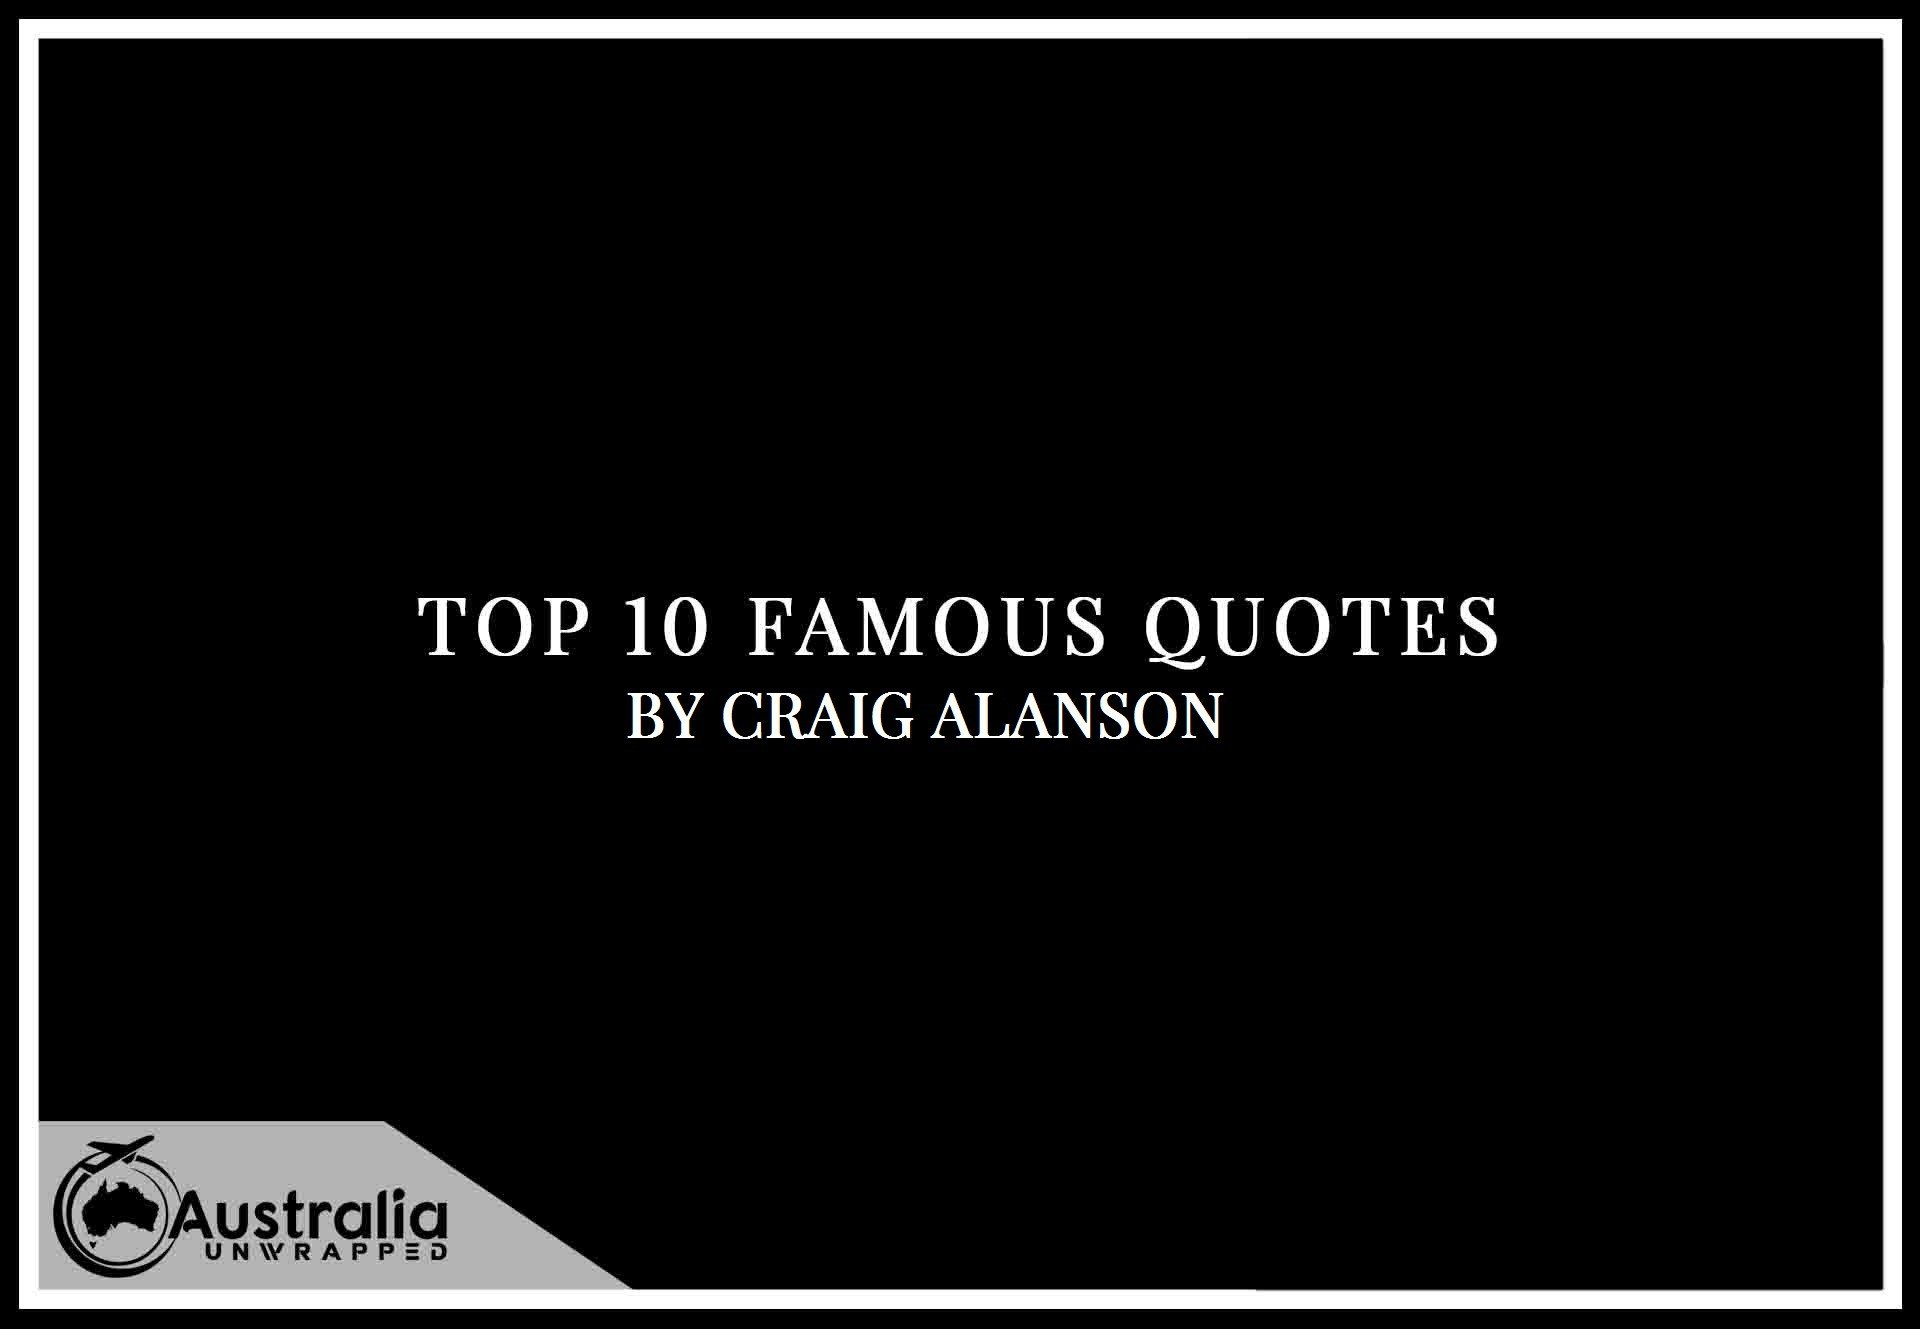 Craig Alanson's Top 10 Popular and Famous Quotes